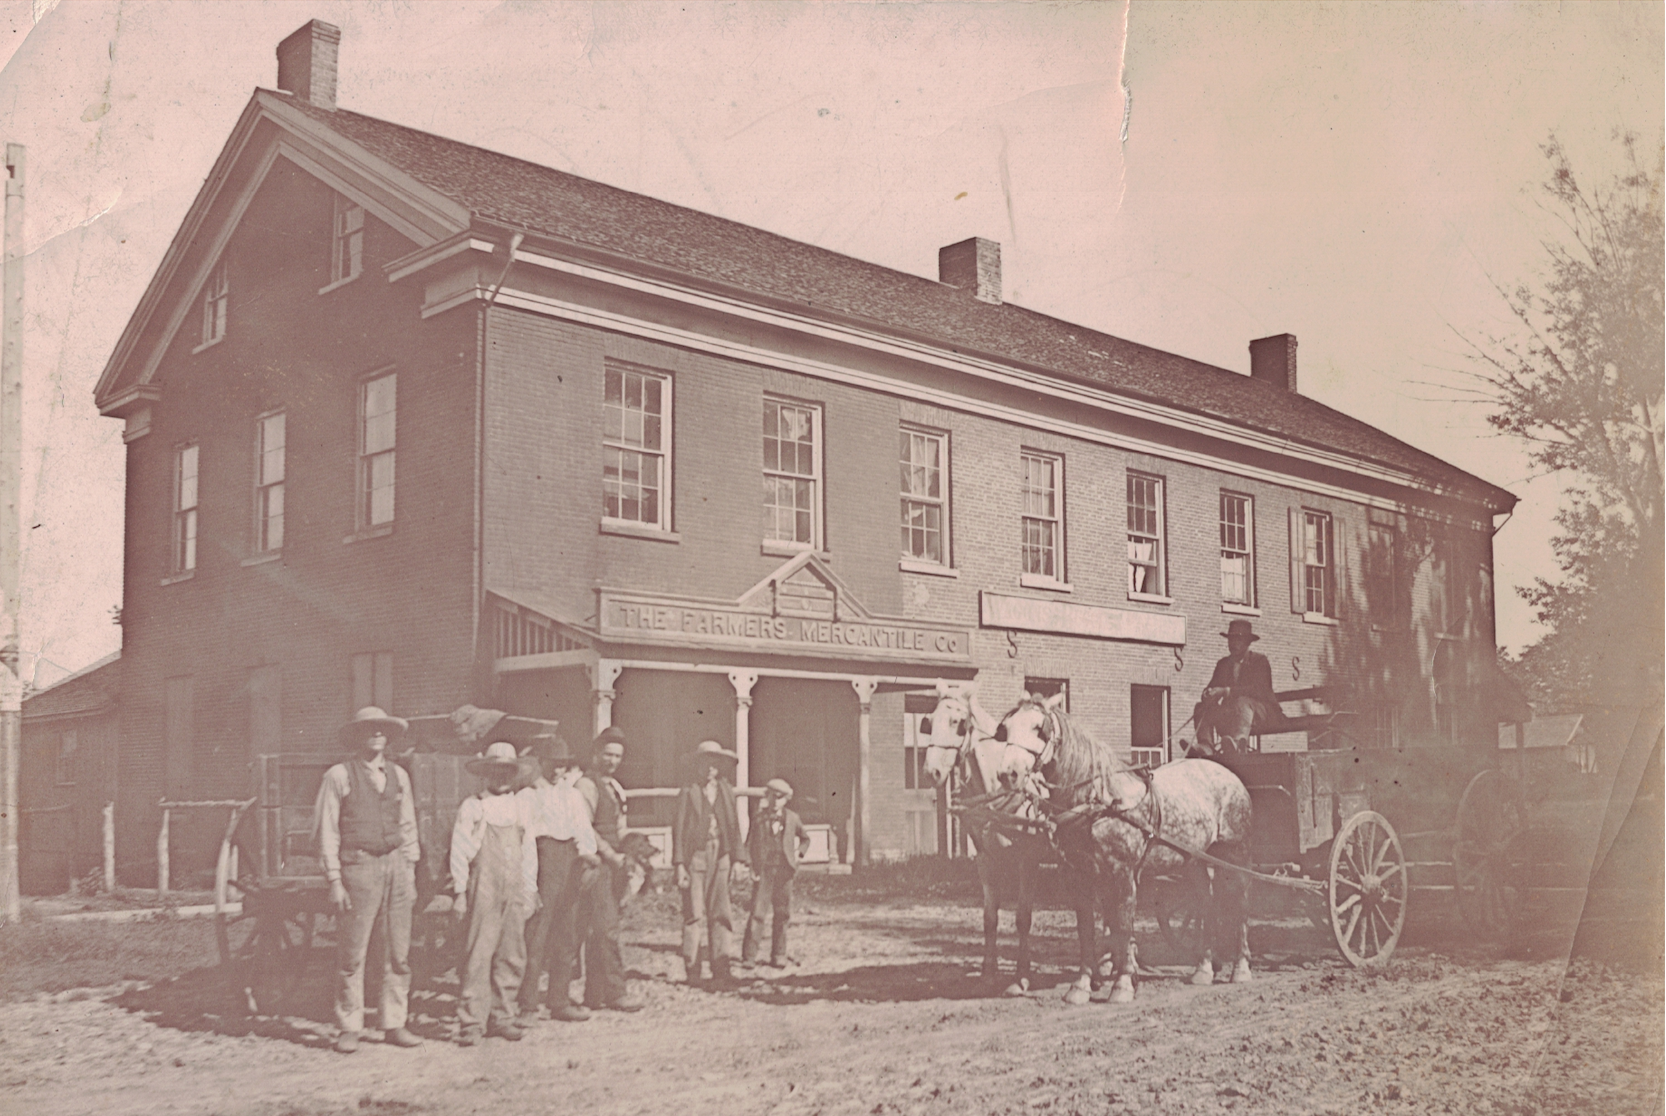 Historic photo of the Blacksmith shop from the late 1880s.